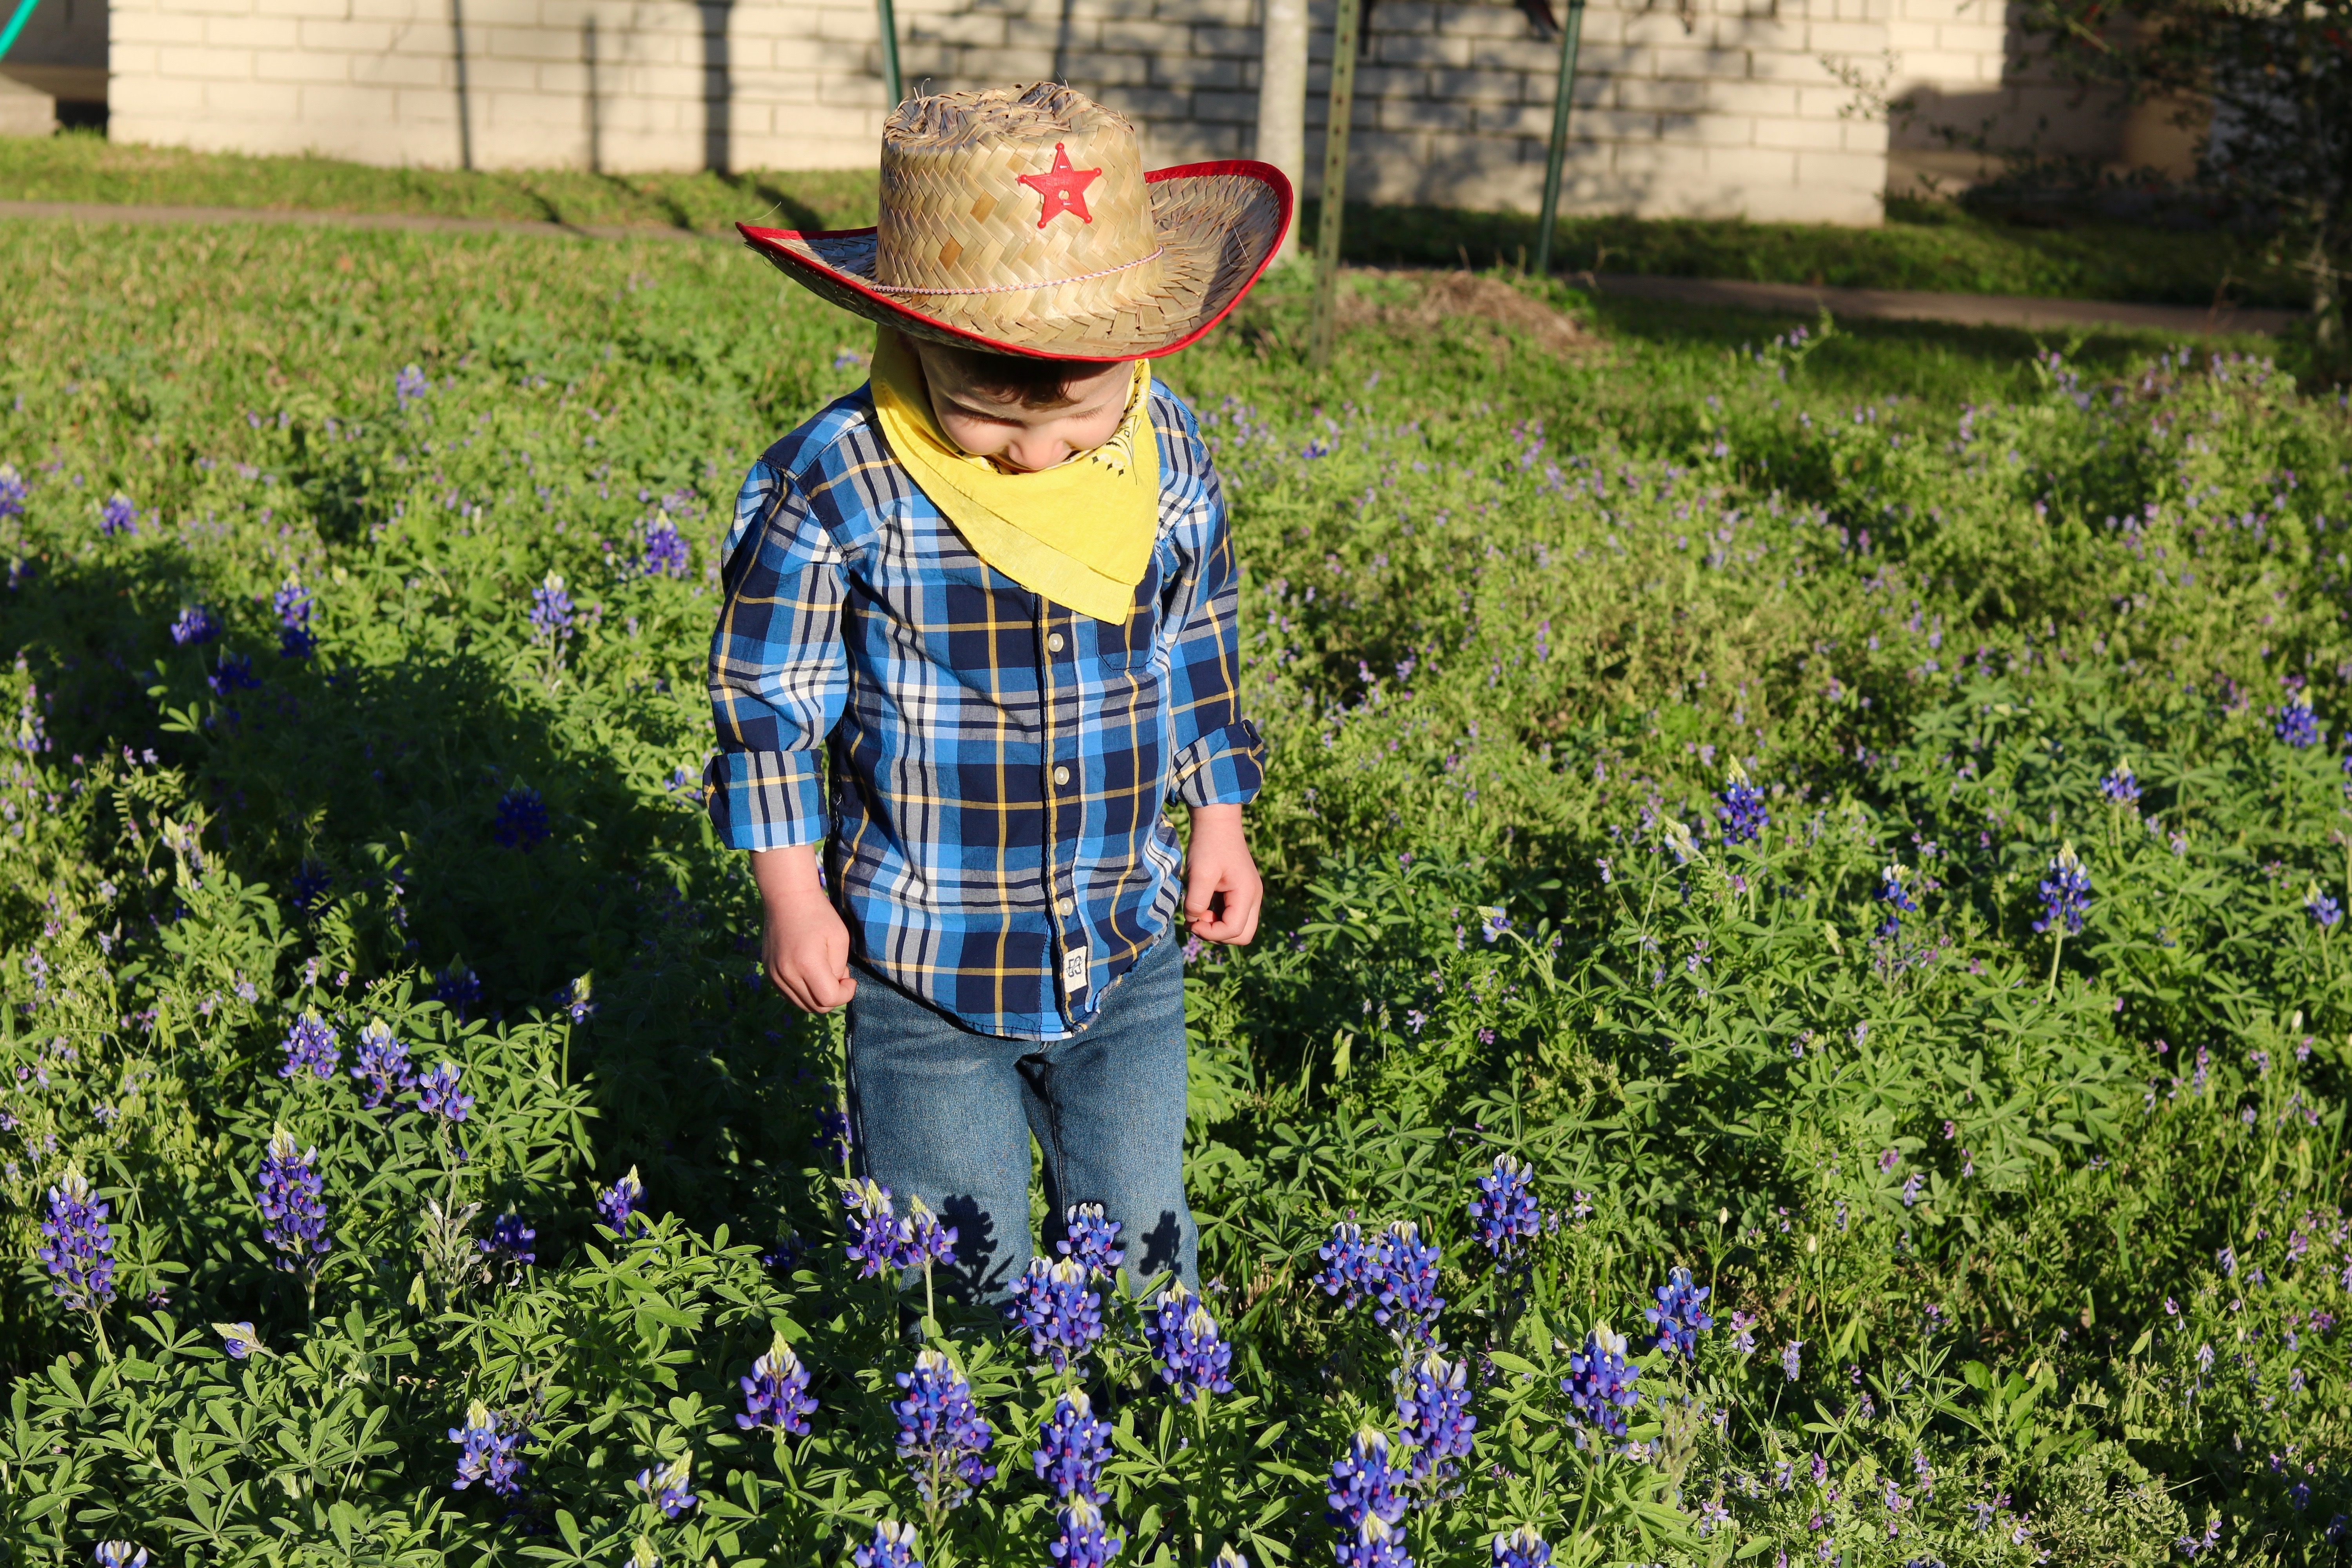 a toddler looks at a small unmowed lawn with purple flowers. he is dressed in a cowboy hat and very cute